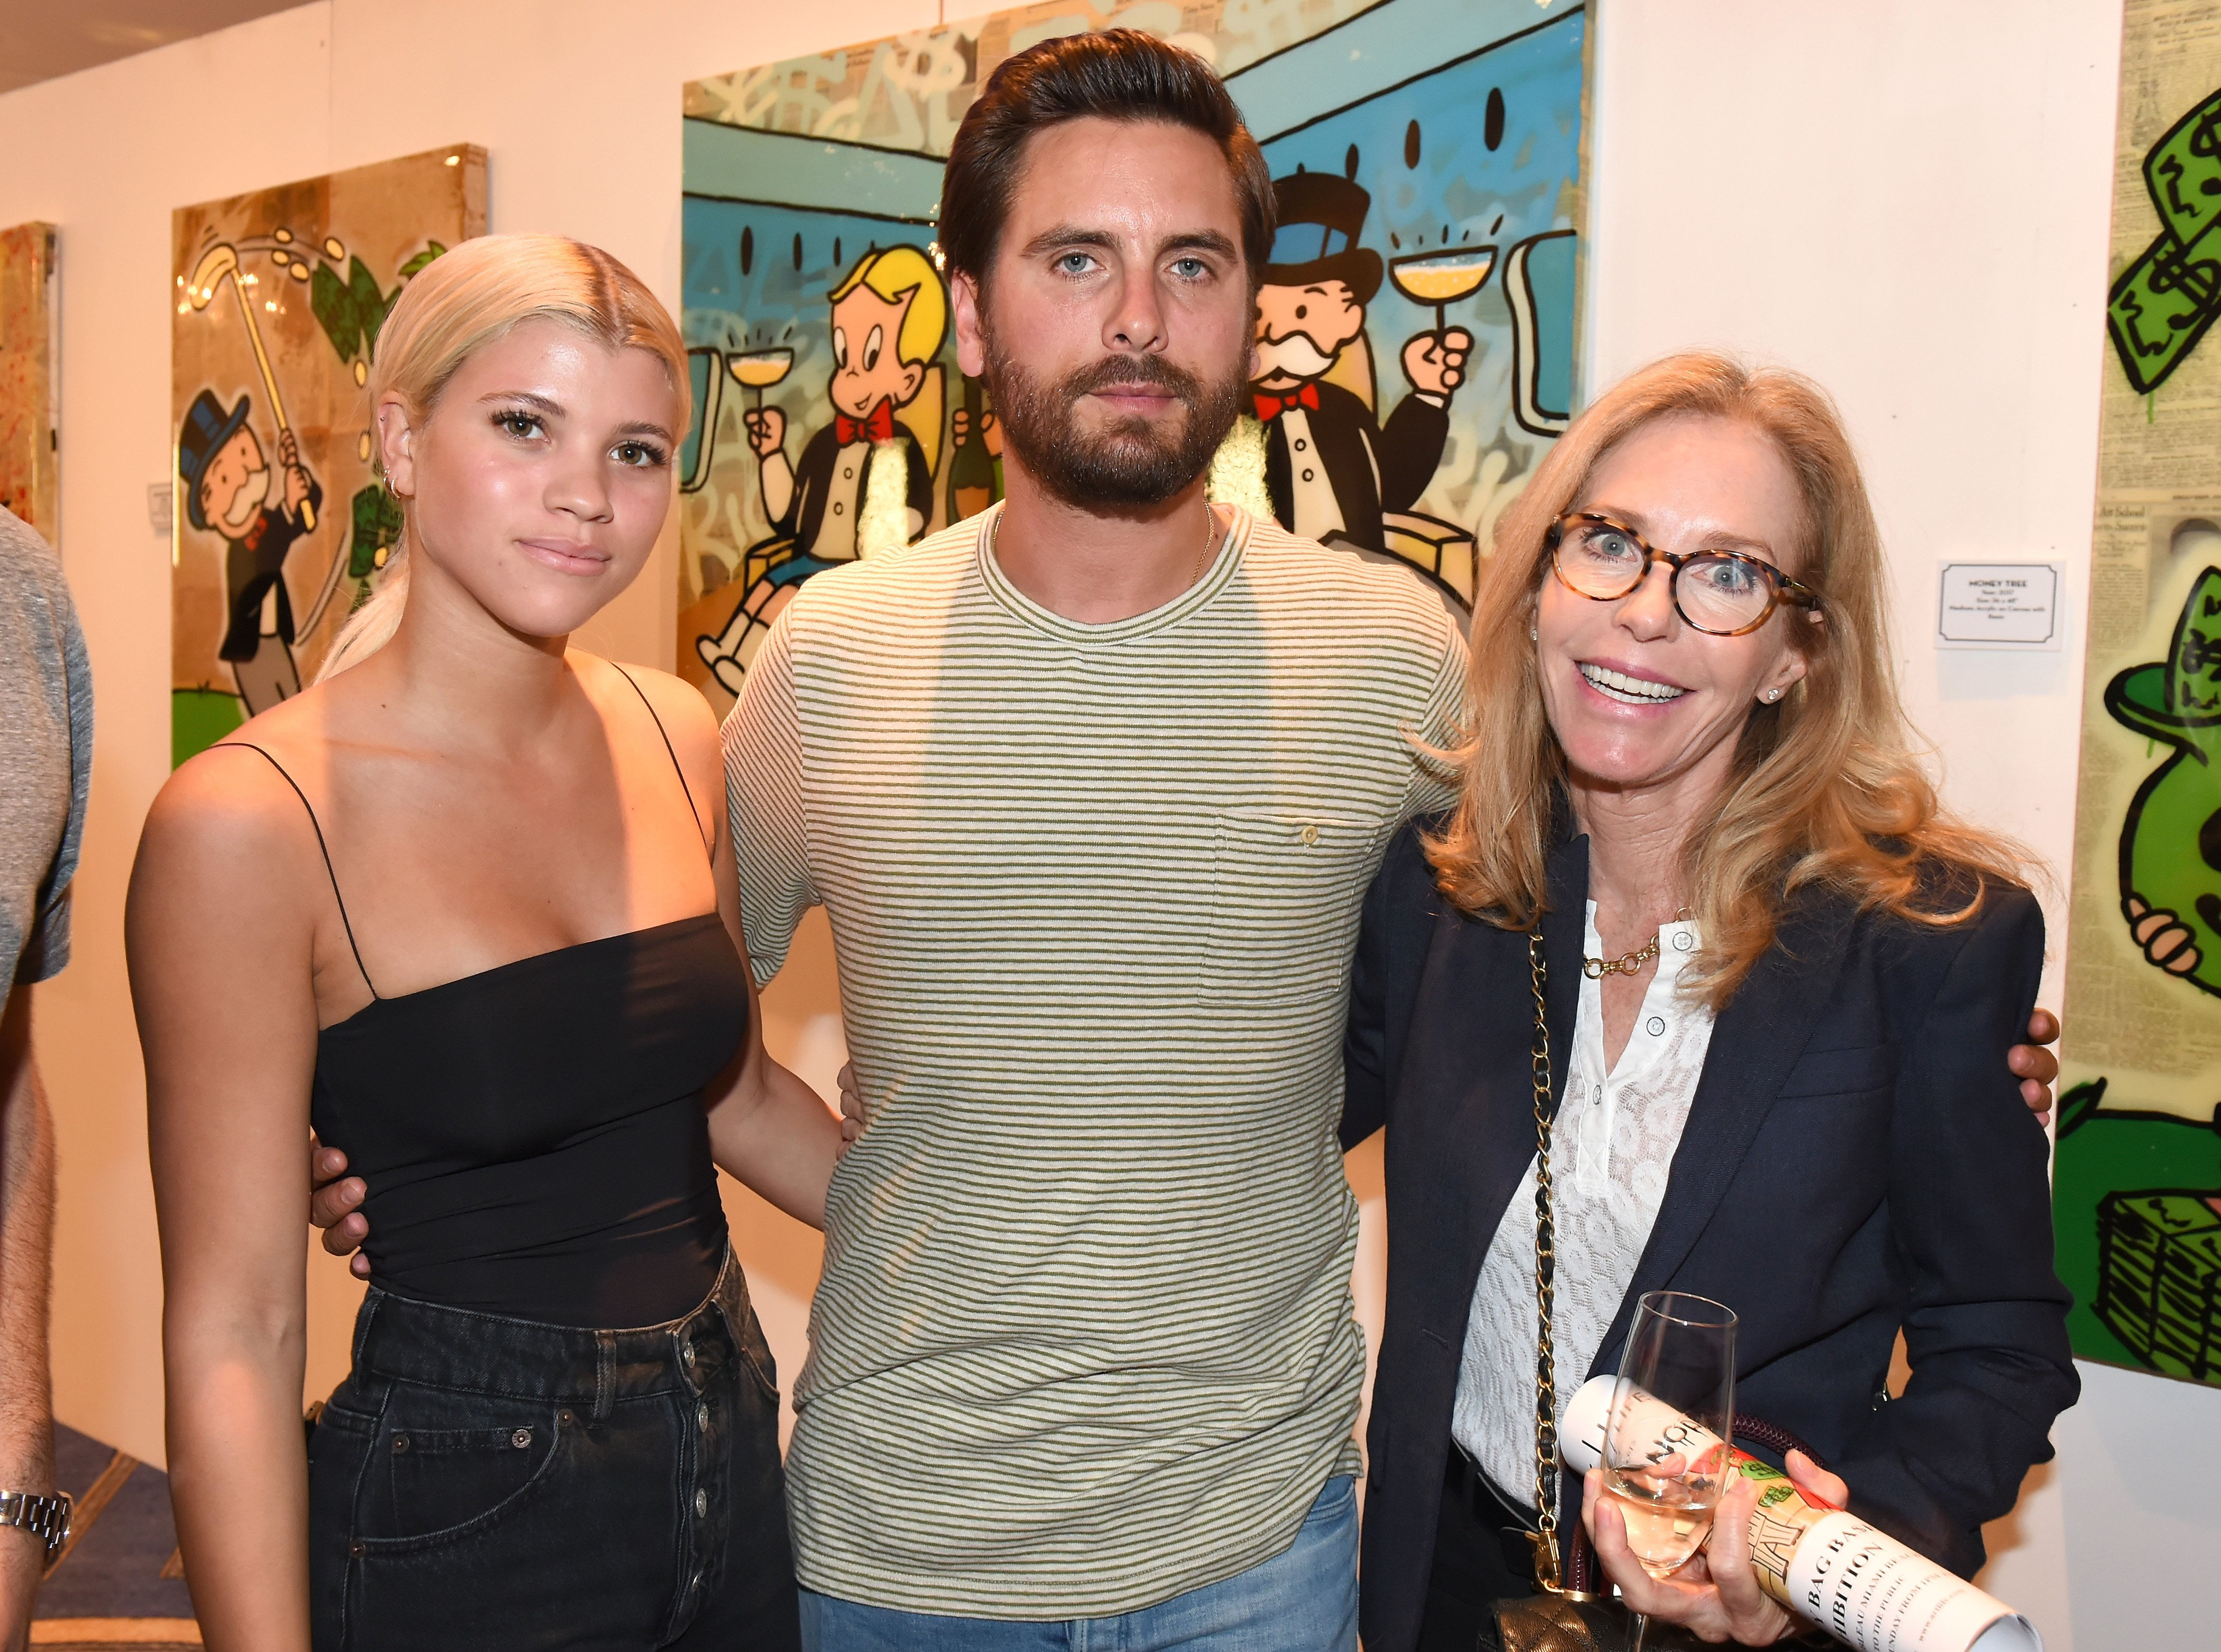 Sofia Richie, Scott Disick, and Alexandra Andon attend the opening of an art gallery at Fleur de Lis Ballroom in Miami Beach, Florida on December 7, 2017 | Photo: Getty Images